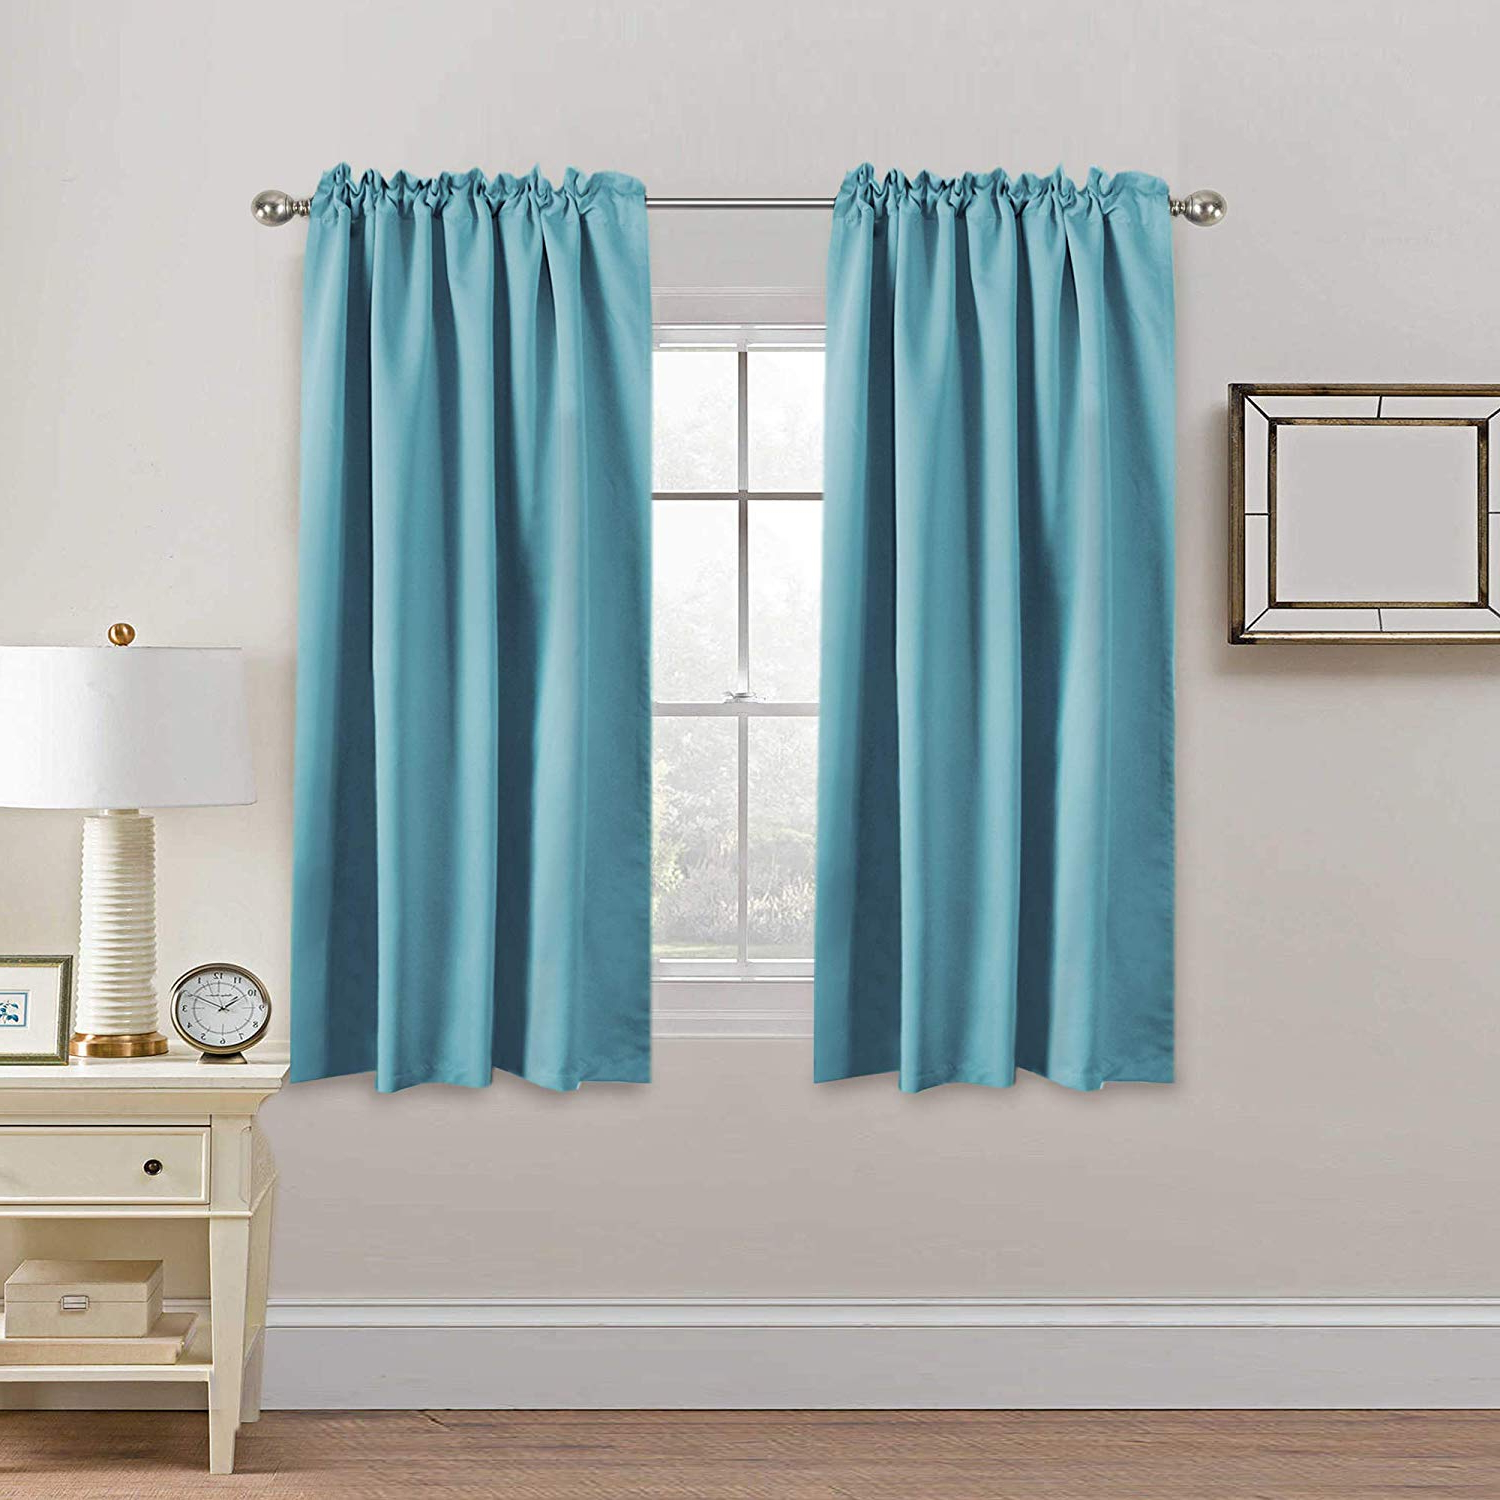 H.versailtex Extra Blackout Curtain Panels, Insulated Thermal Curtains For  Bedroom, 63 Inch Curtain Panels Pair – Back Tab/rod Pocket Drapes For Intended For Newest Solid Insulated Thermal Blackout Long Length Curtain Panel Pairs (Gallery 18 of 20)